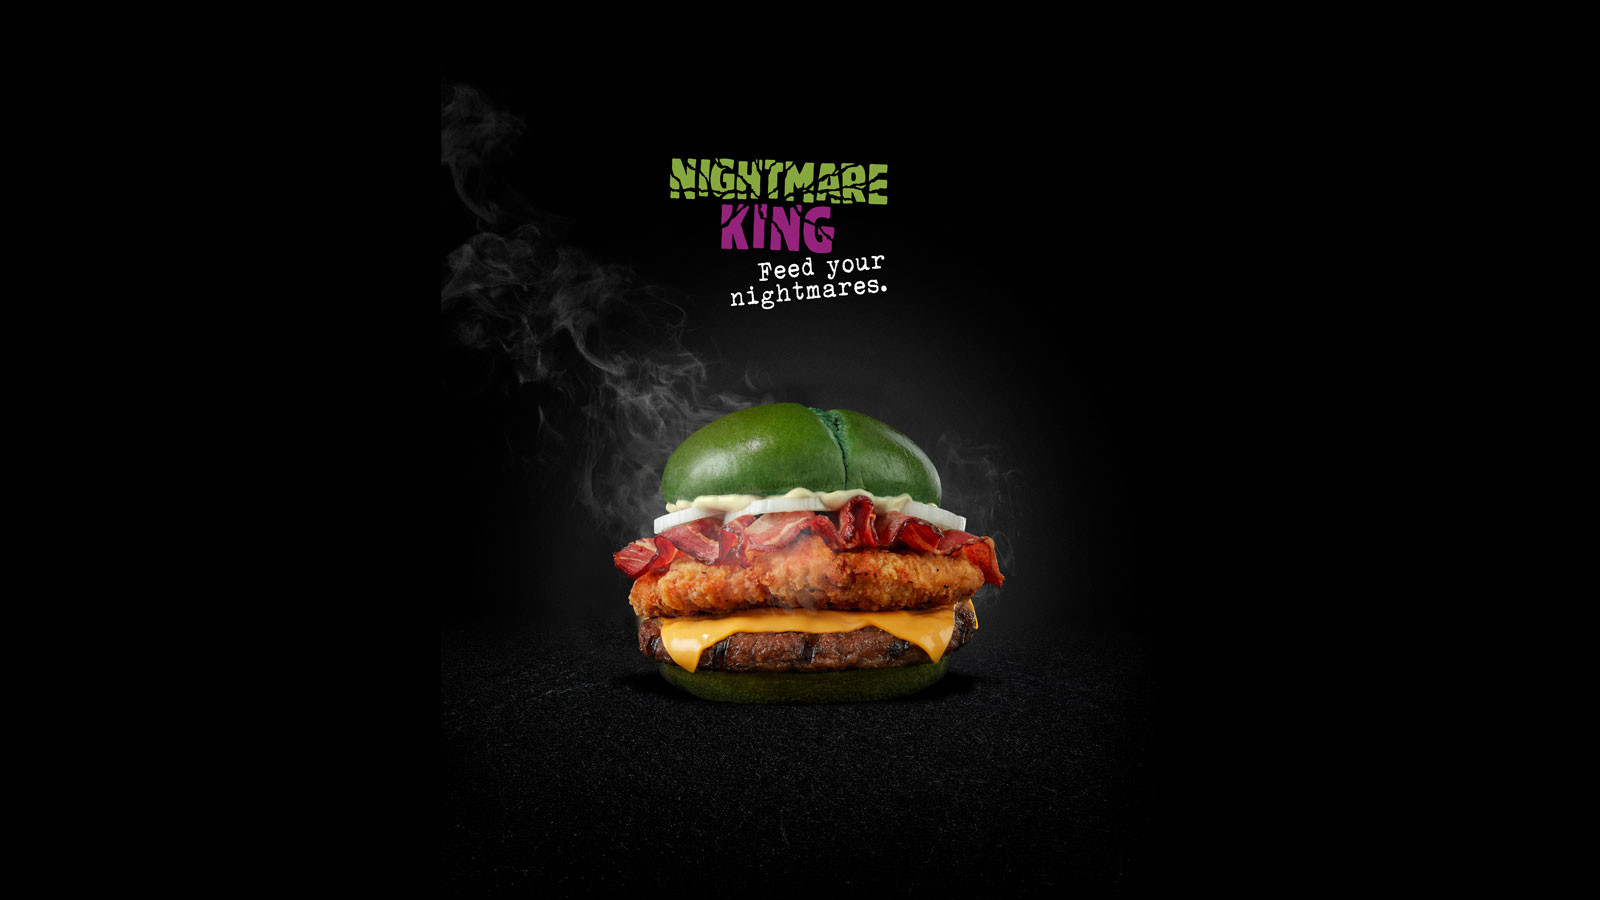 Burger King creates a Halloween Sandwich clinically proven to induce nightmares